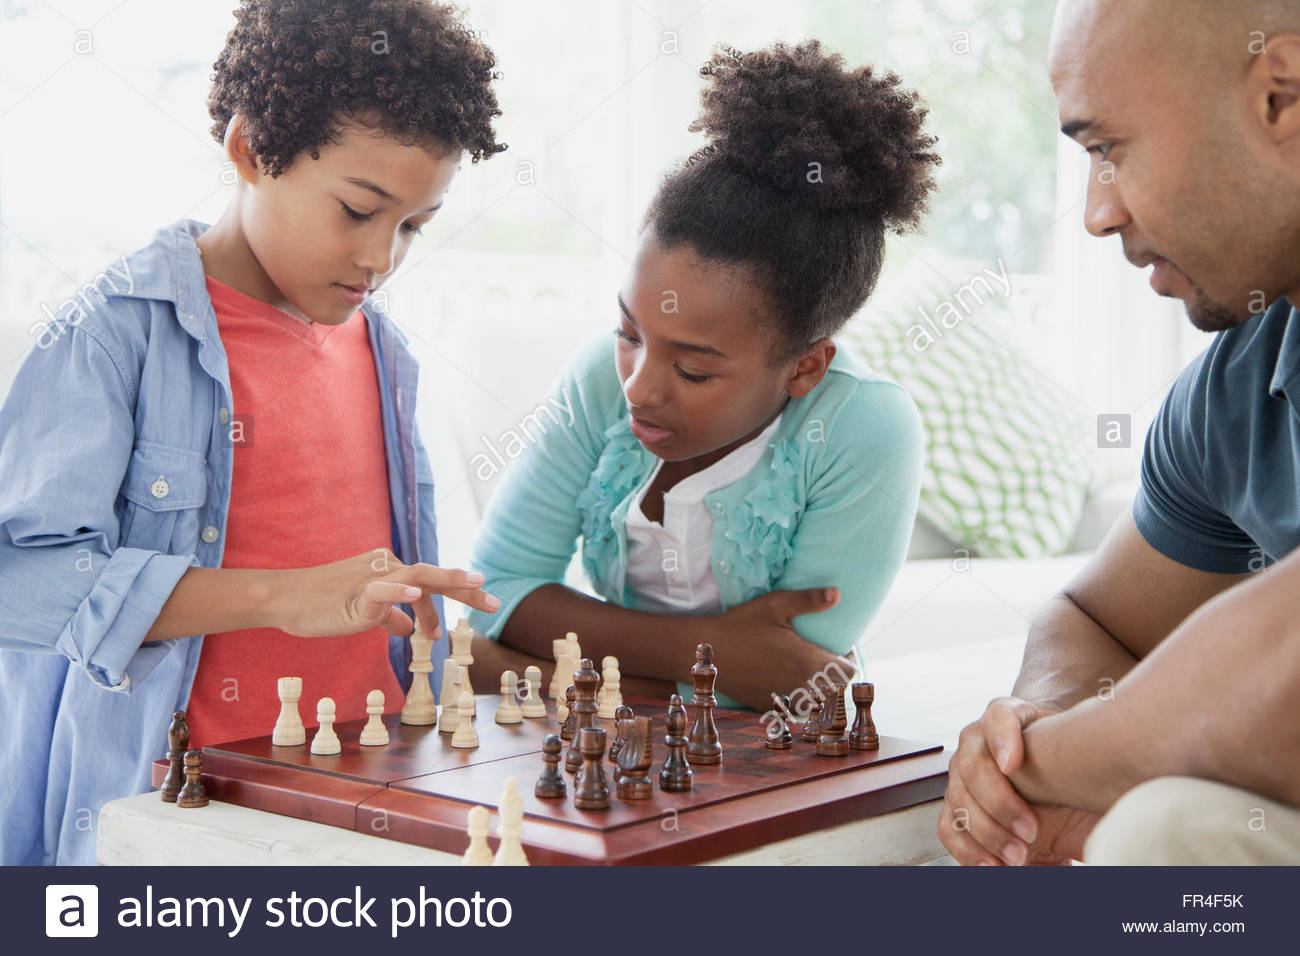 brother and sister playing a chess game - Stock Image